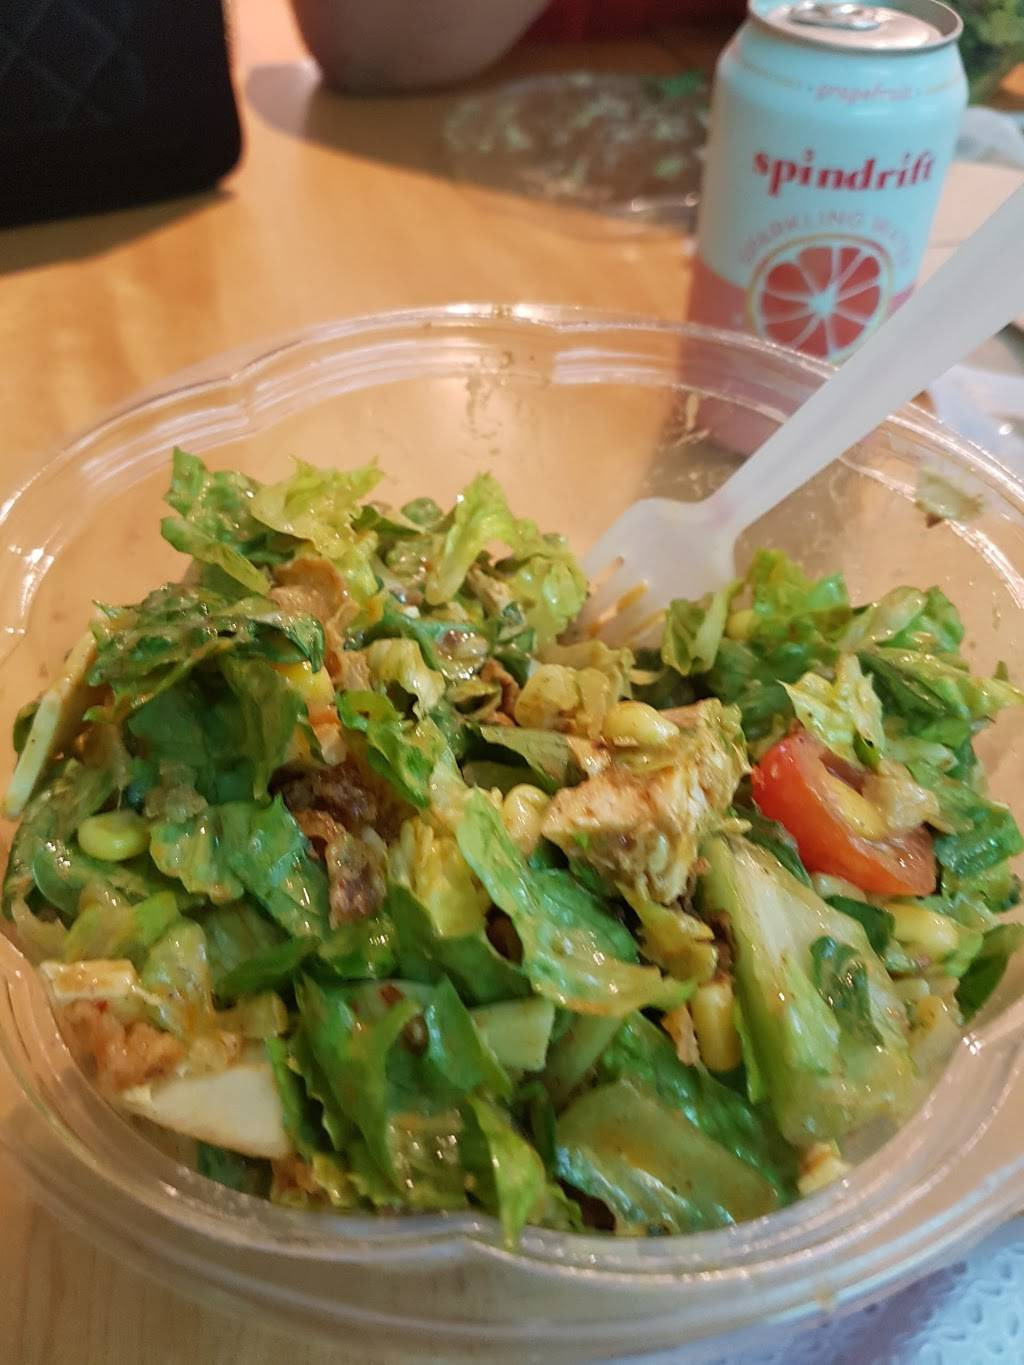 Chopt Creative Salad Co. | restaurant | 120 W 56th St, New York, NY 10019, USA | 6467831600 OR +1 646-783-1600